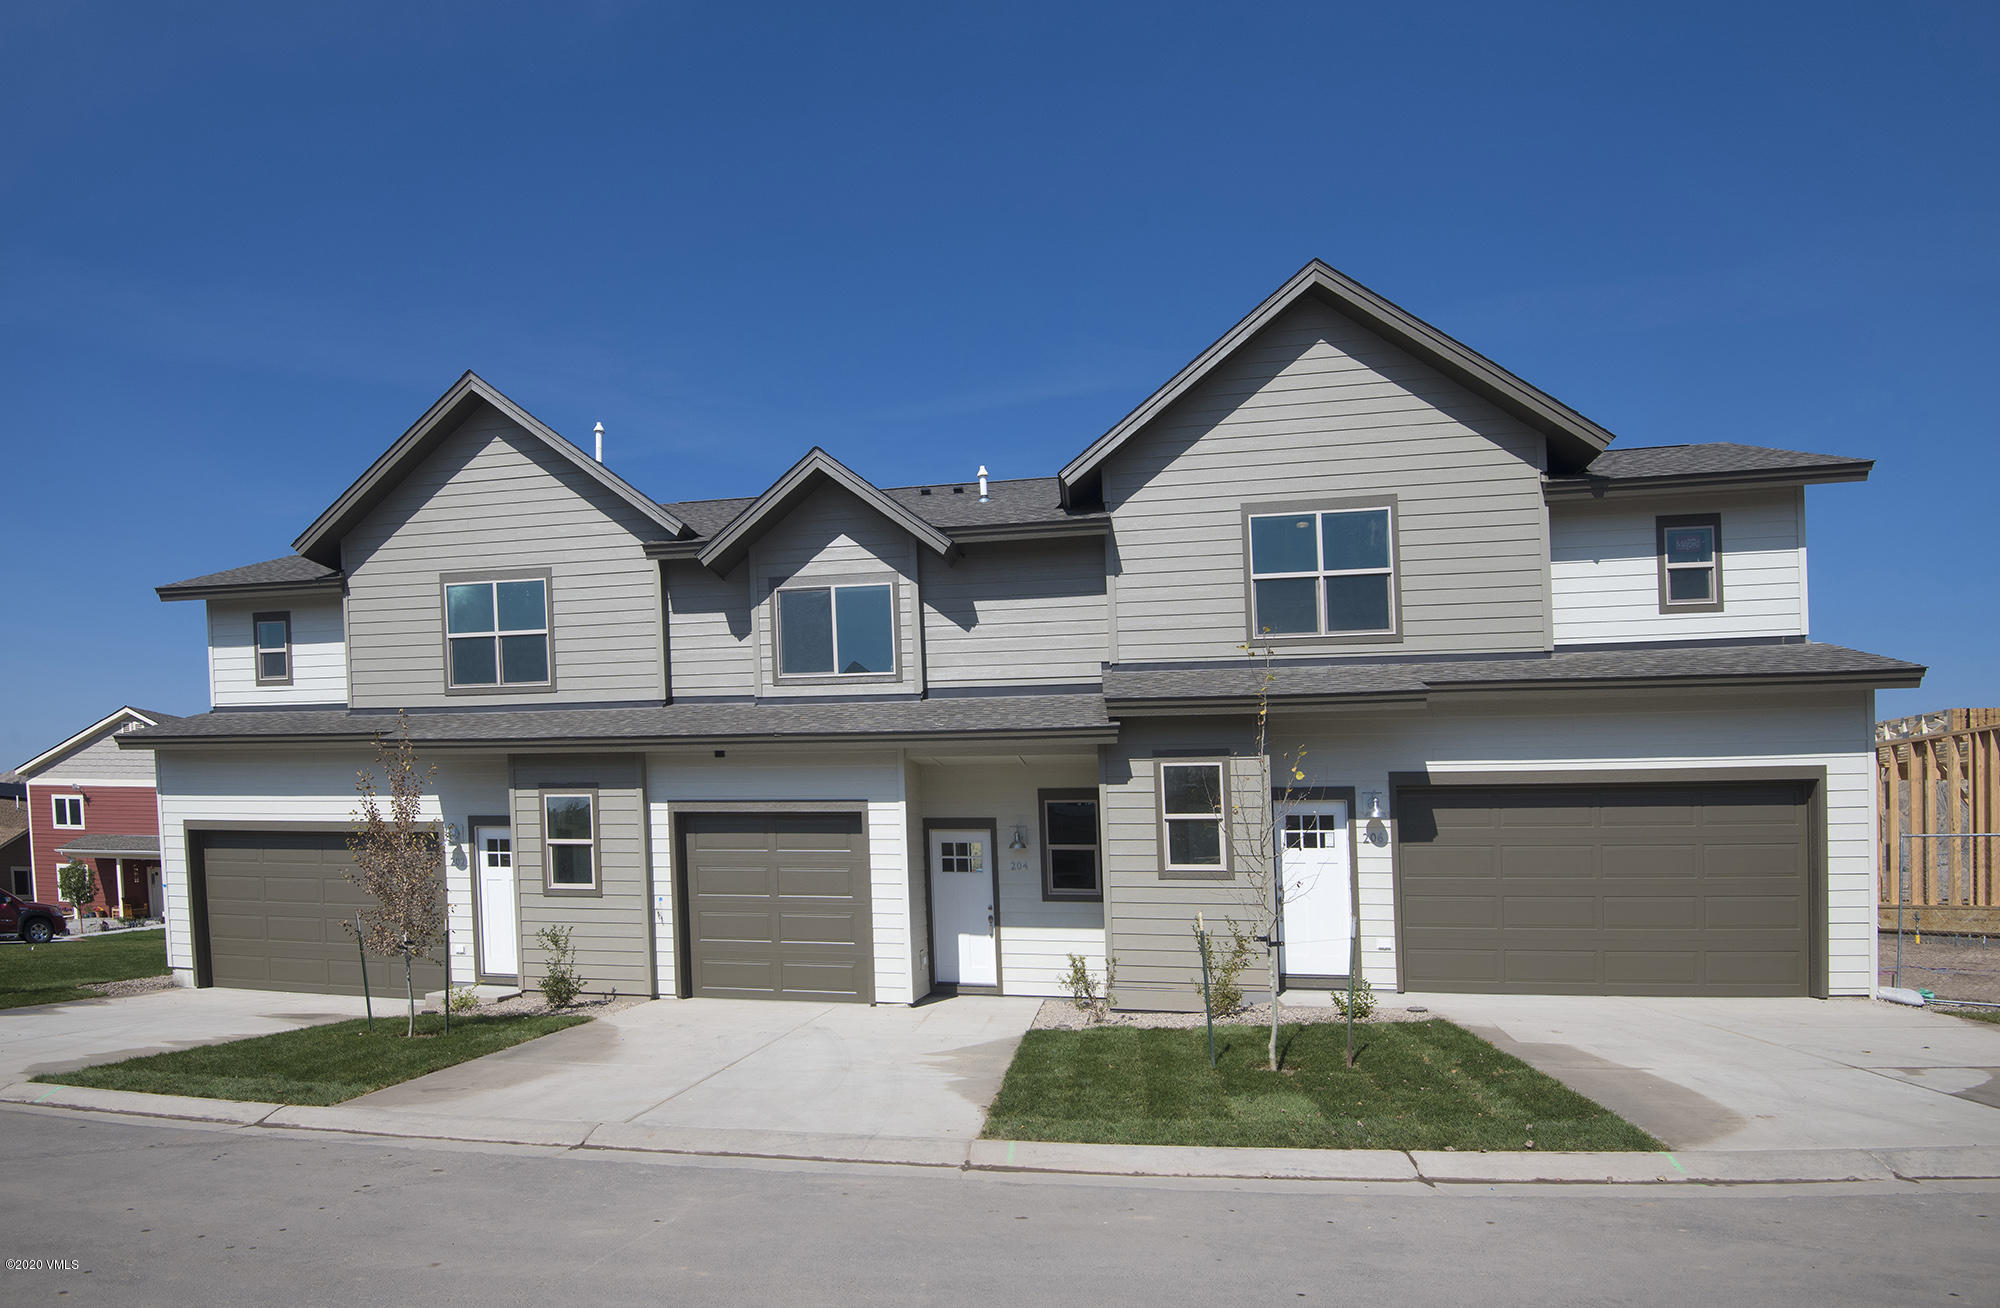 BRAND NEW TOWNHOME! Now Under Construction! Well-designed, site-built, 3 bedroom, 2.5 bath home with an attached 2-car garage. Incredibly convenient location close to Costco, Gypsum Rec Ctr, and Eagle County Airport. Only minutes to world-class recreation of all types. Standard finishes include vaulted ceilings, LVT flooring, quartz countertops, kitchen pantry, & stainless steel Whirlpool appliances. Laundry room conveniently located on the bedroom level. This is an end unit & offers plenty of light.